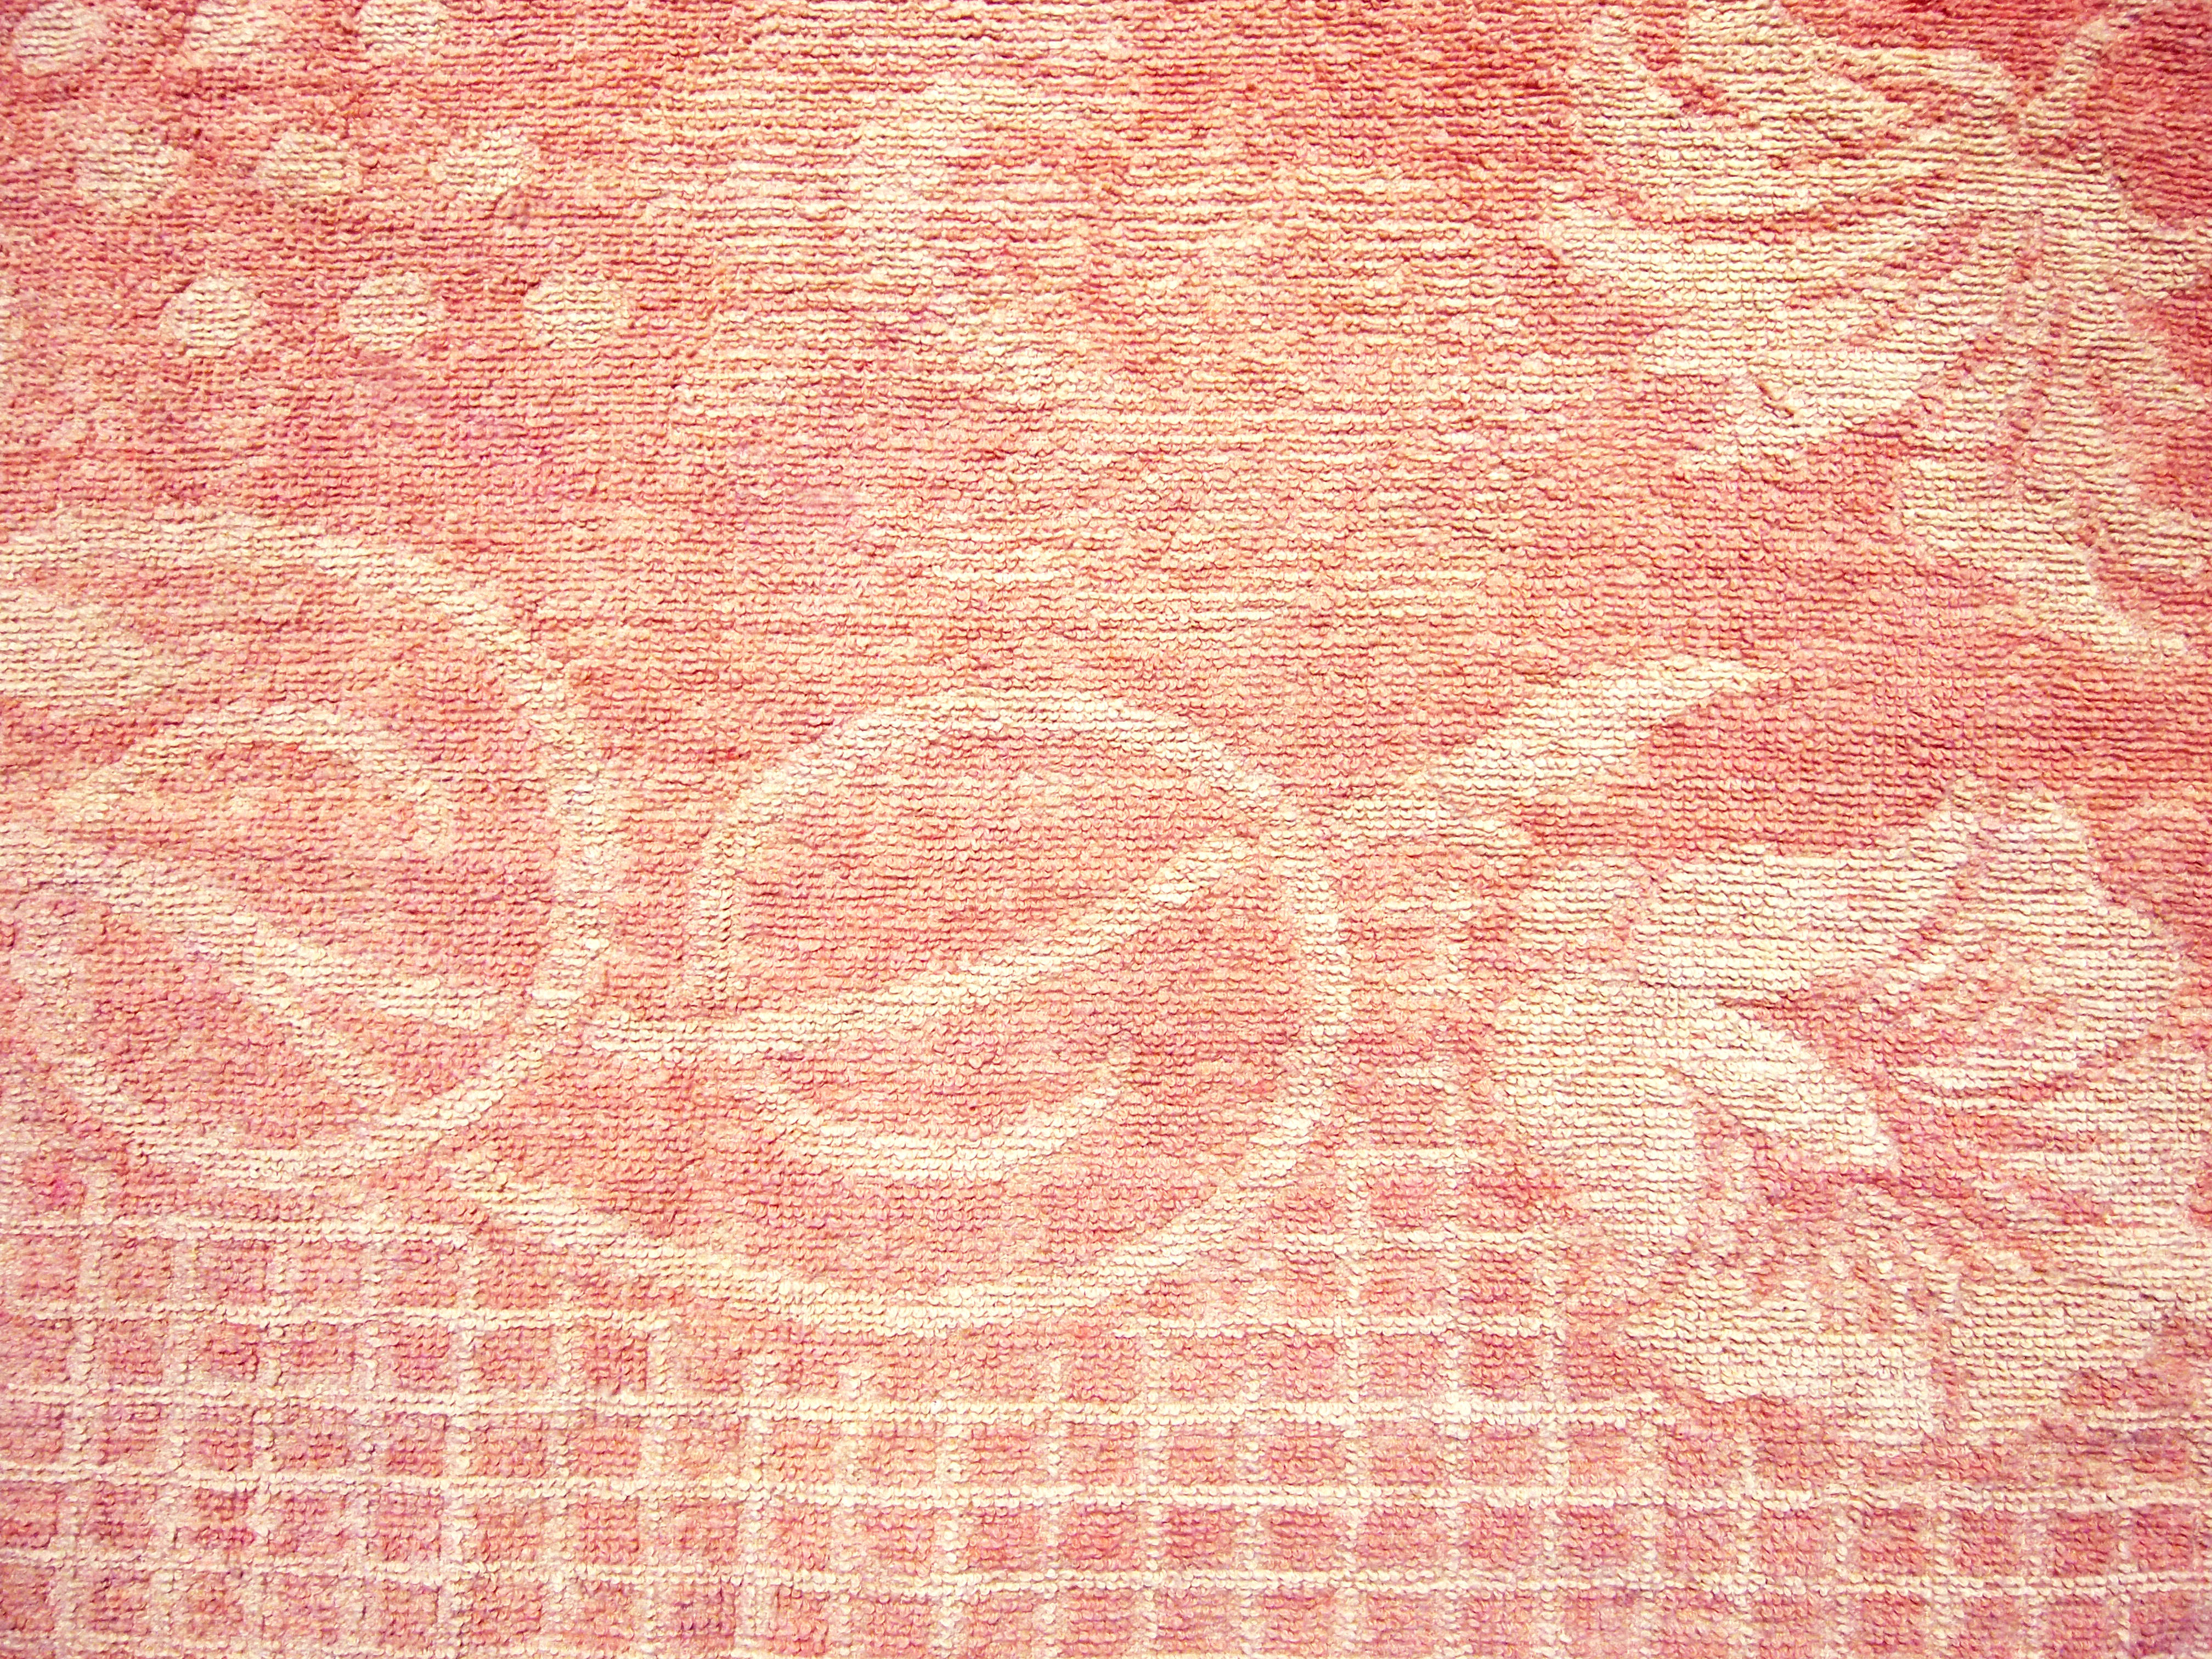 Soft towel fabric textures 30day free texture challenge